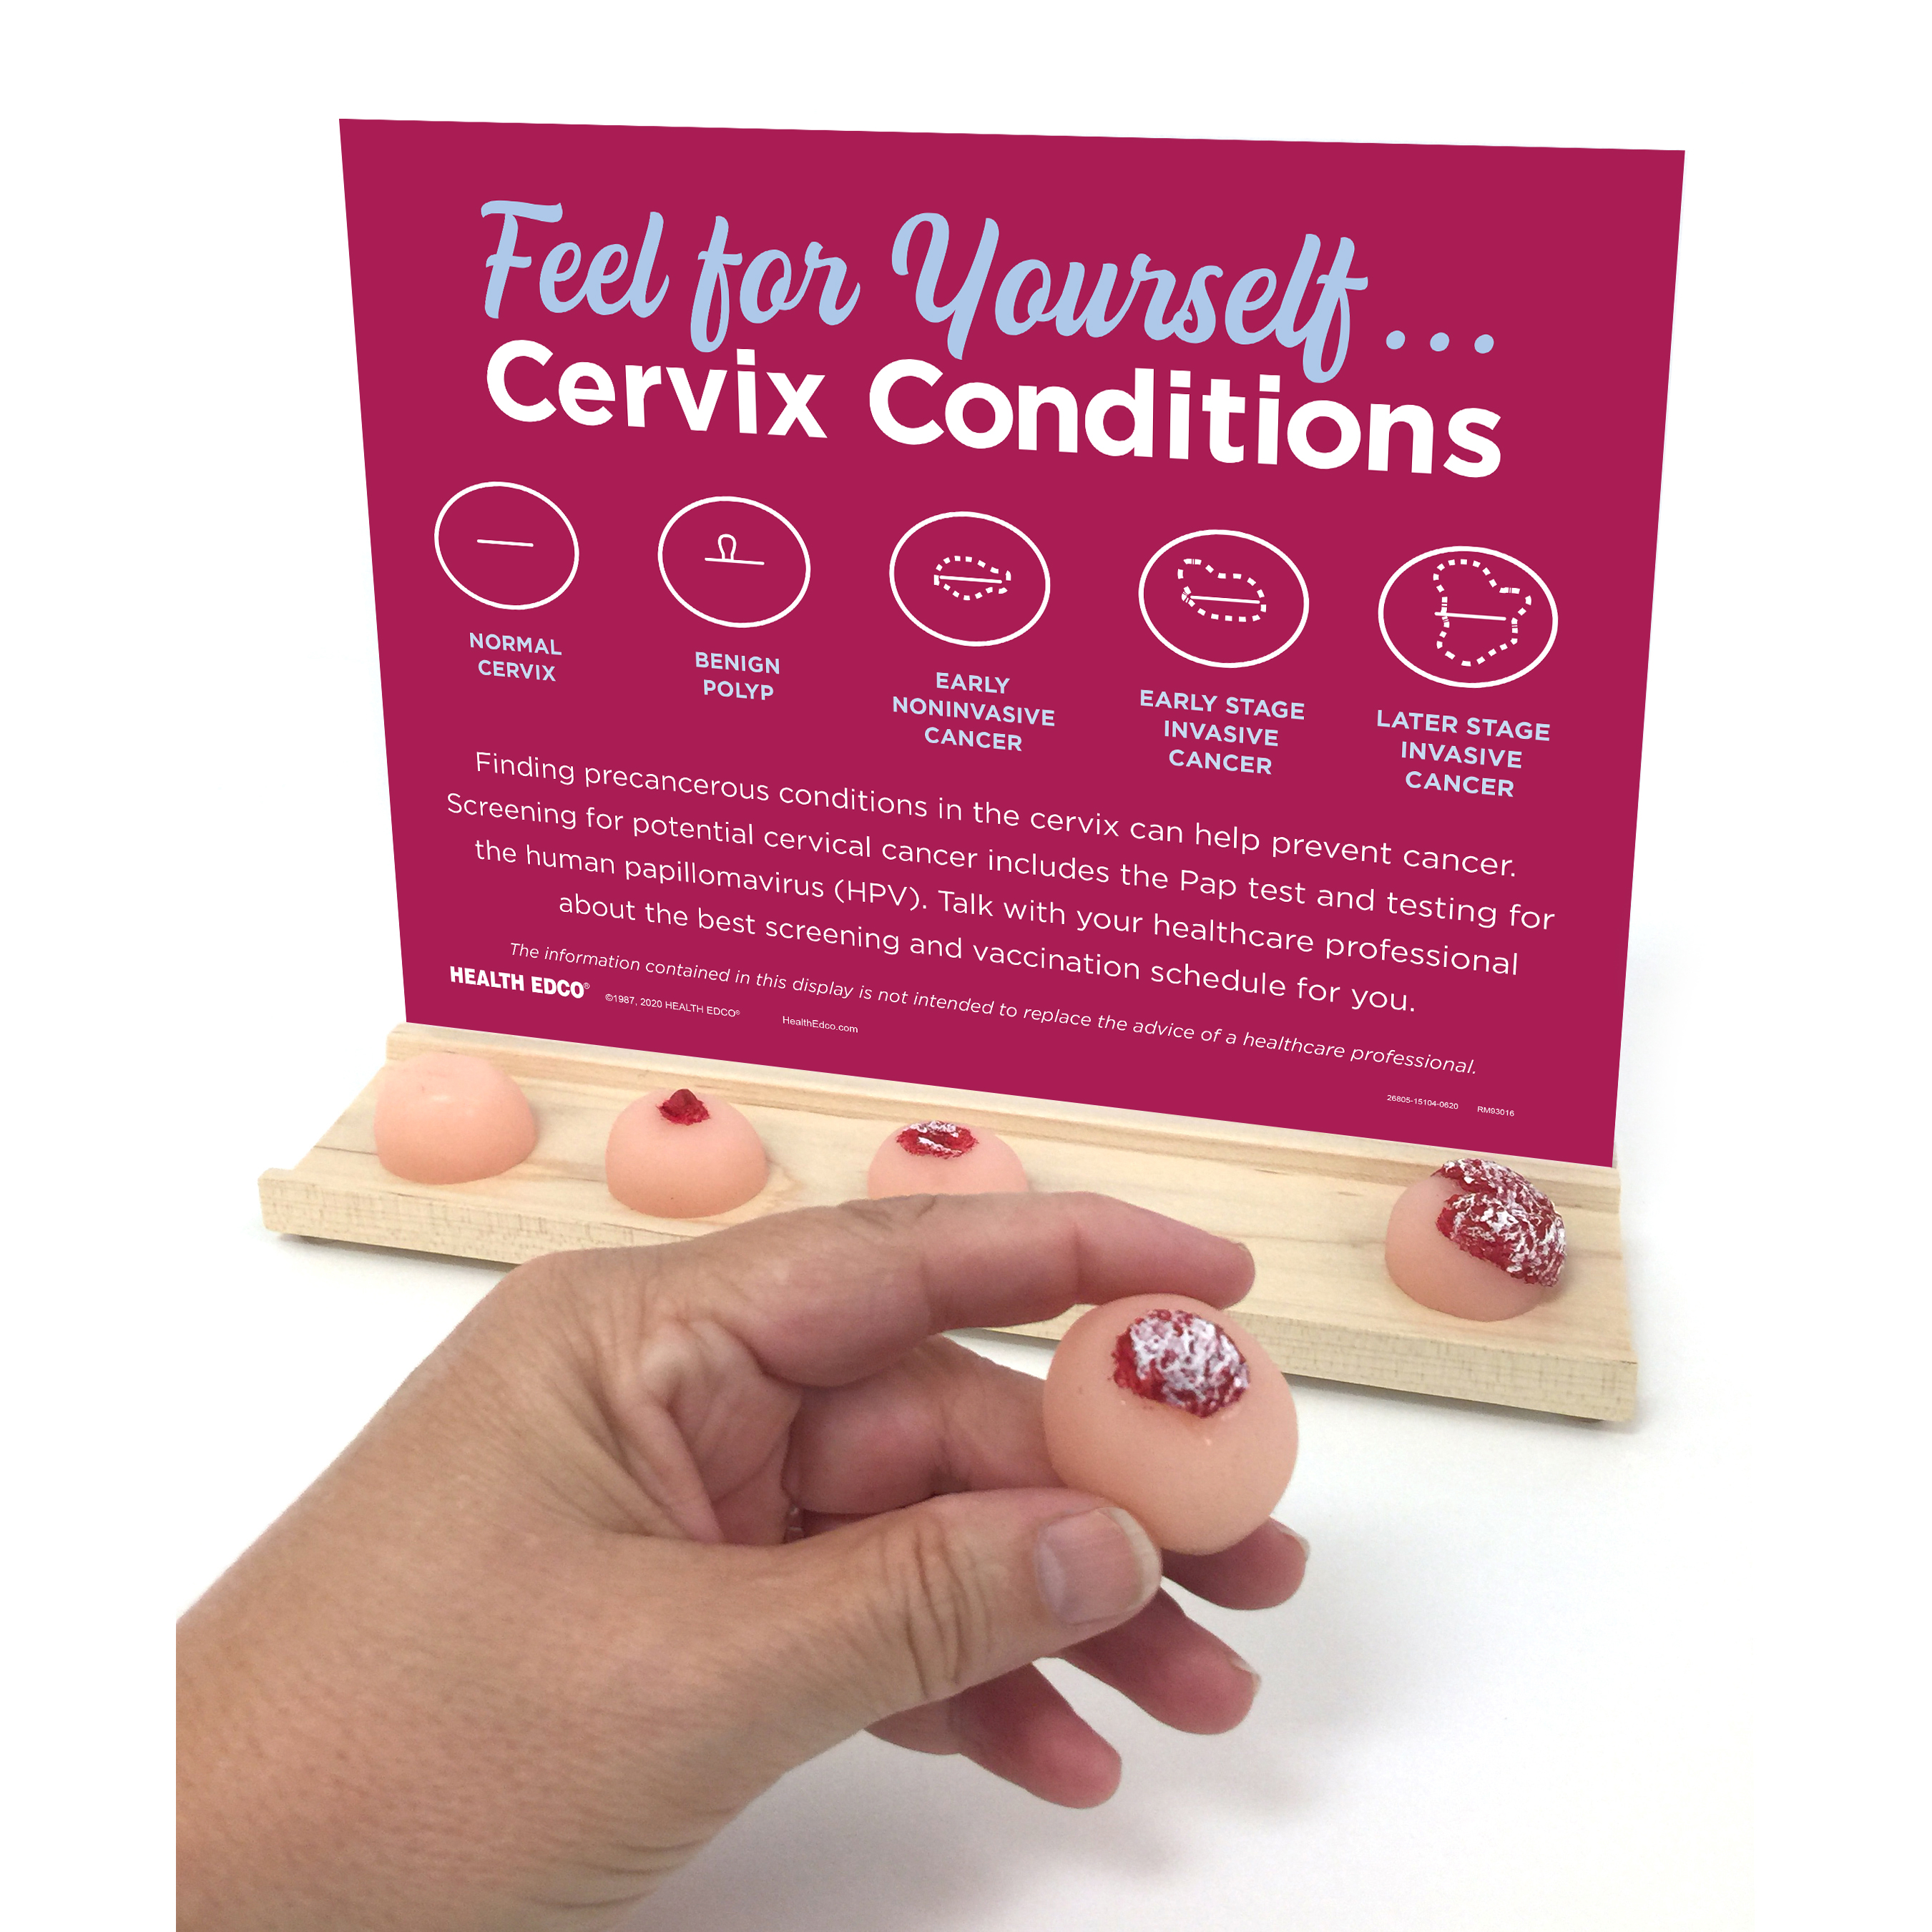 Cervix Conditions Display,5 cervix conditions with tray of realistic feeling cervix condition models, hand holding one model, cervical screening PAP test and HPV testing, Health Edco, 26805